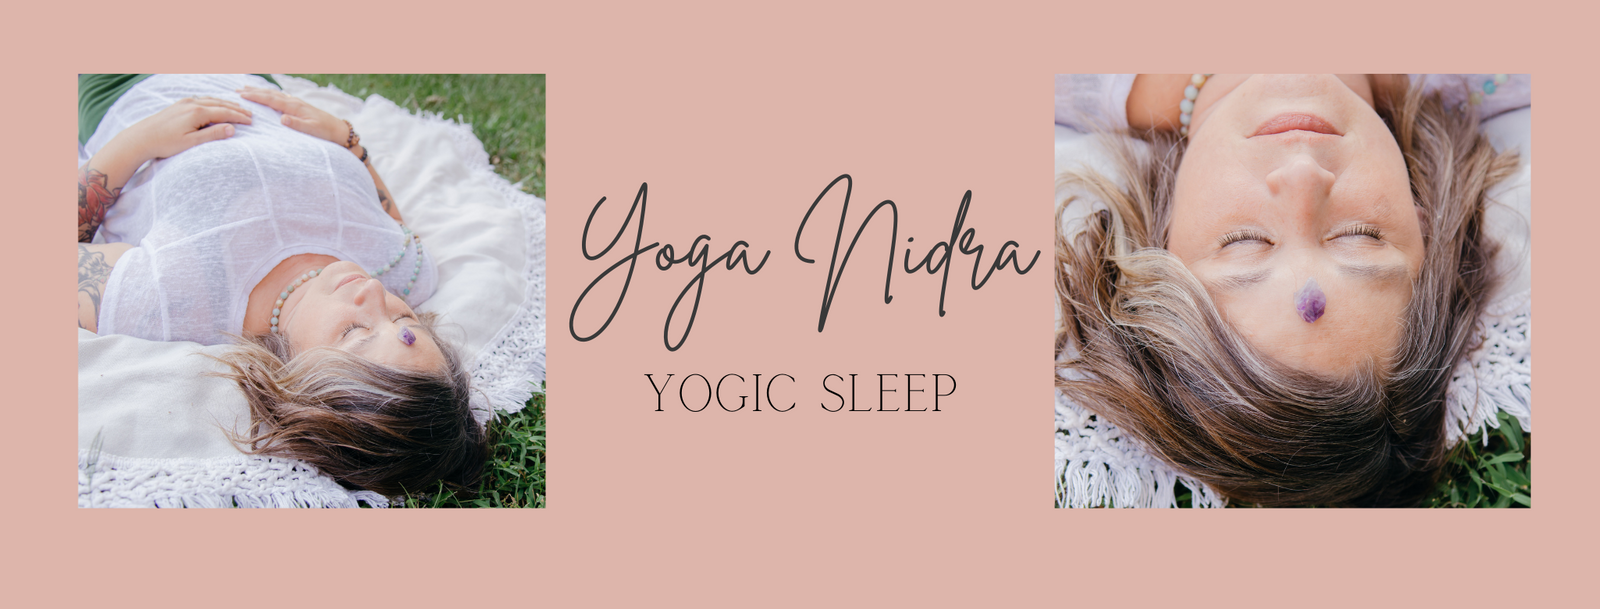 """You deserve to rest. This practice is a practice of rest. Yoga Nidra is the perfect way to start your weekend.   Yoga Nidra, also known as """"yoga sleep"""" or """"psychic sleep"""", is a guided systematic meditation that uses a series of structured awareness techniques to guide the practitioner into a sleep-like state, resting between consciousness (wakefulness) and unconsciousness (sleep). This """"lucid sleep"""" is among the deepest possible states of relaxation while remaining conscious.  This class will be online through Zoom. Please have a quiet place to practice. You will be in a supine postion (laying down). Because of this you want to make sure you have blankets or bolsters to keep you stable.   If you are unable to attend the live session the recordng will be sent to you."""